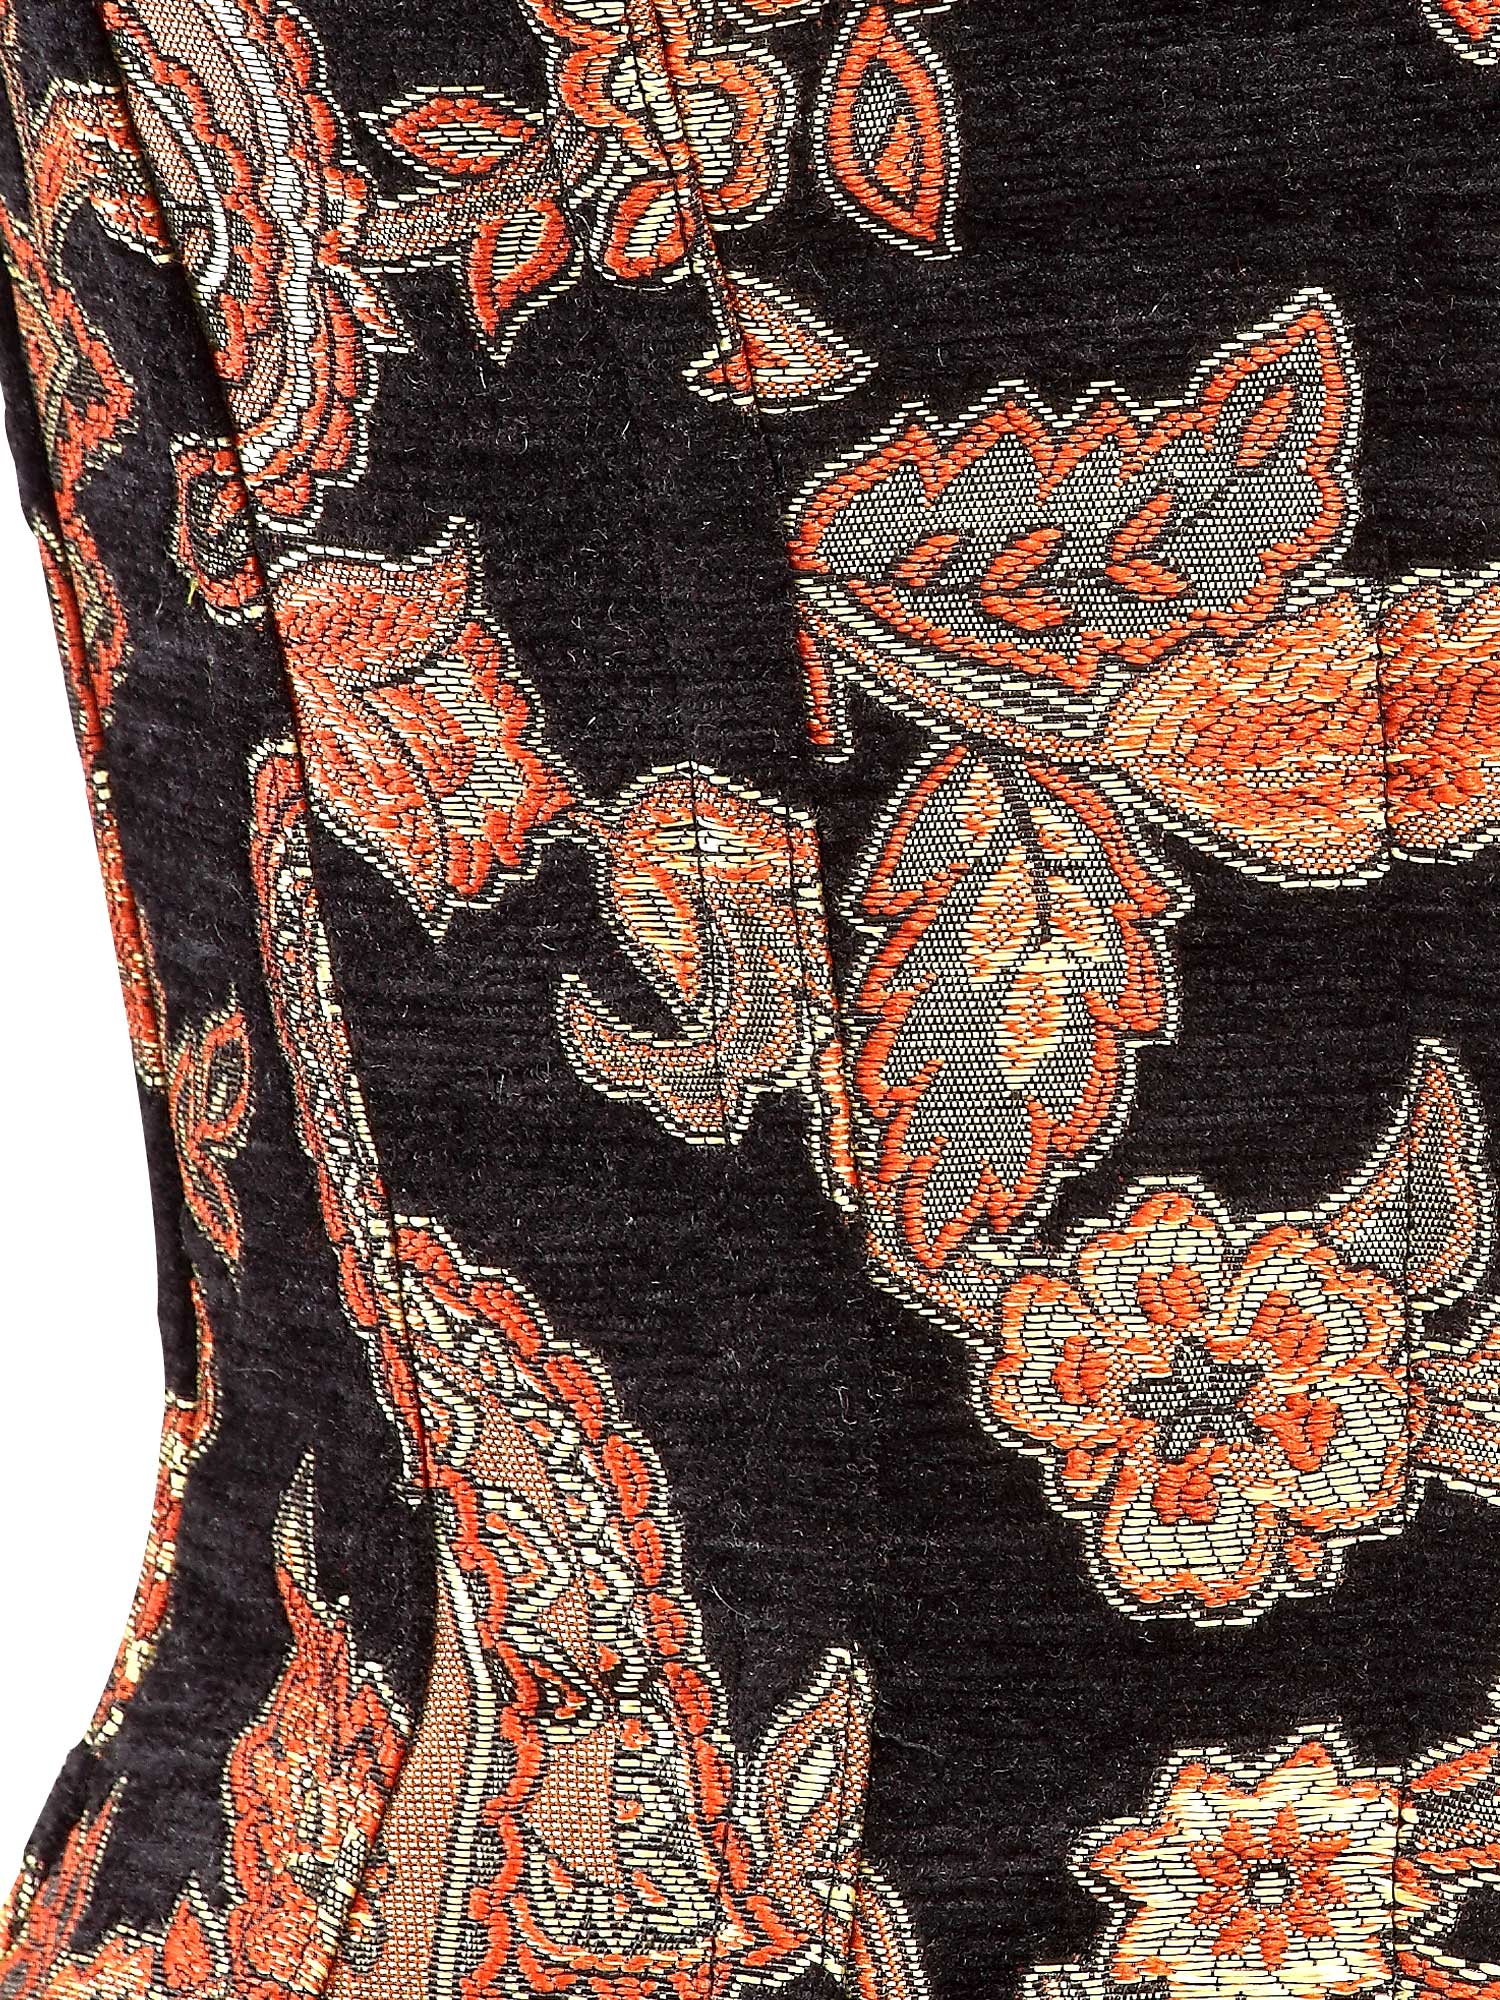 black_floral_tapestry_fabric_steel_boning_corset_waist_cincher_bustier_bustiers_and_corsets_2.jpg